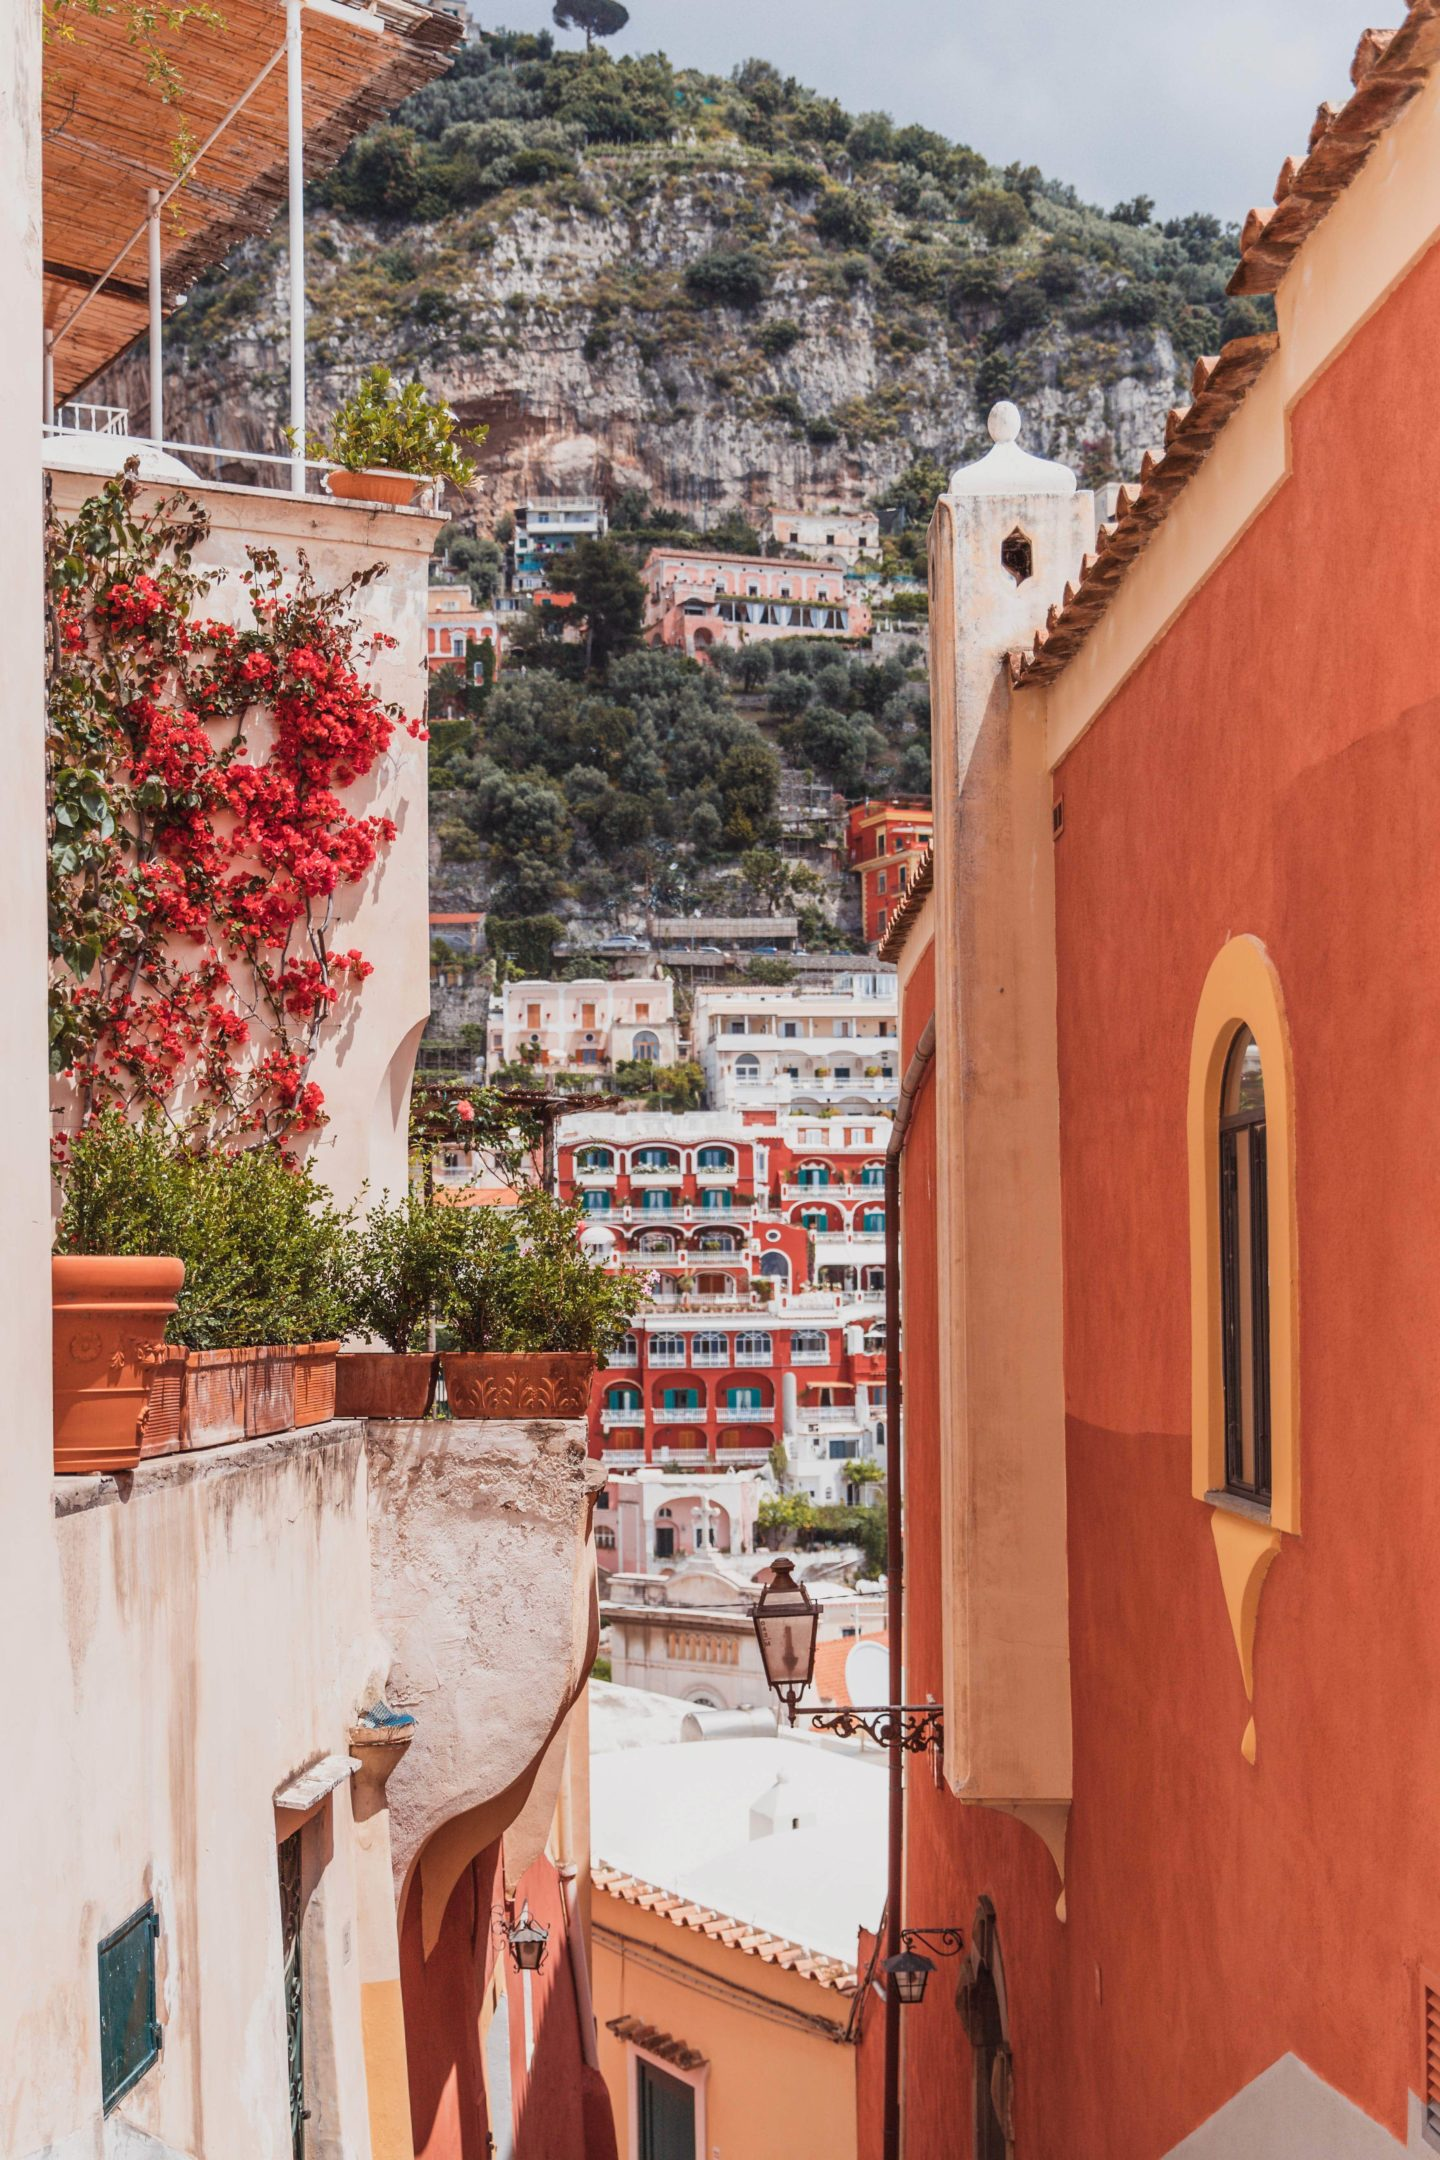 Ultimate 4 Day Positano Italy Travel Itinerary | What to See & Where to Eat